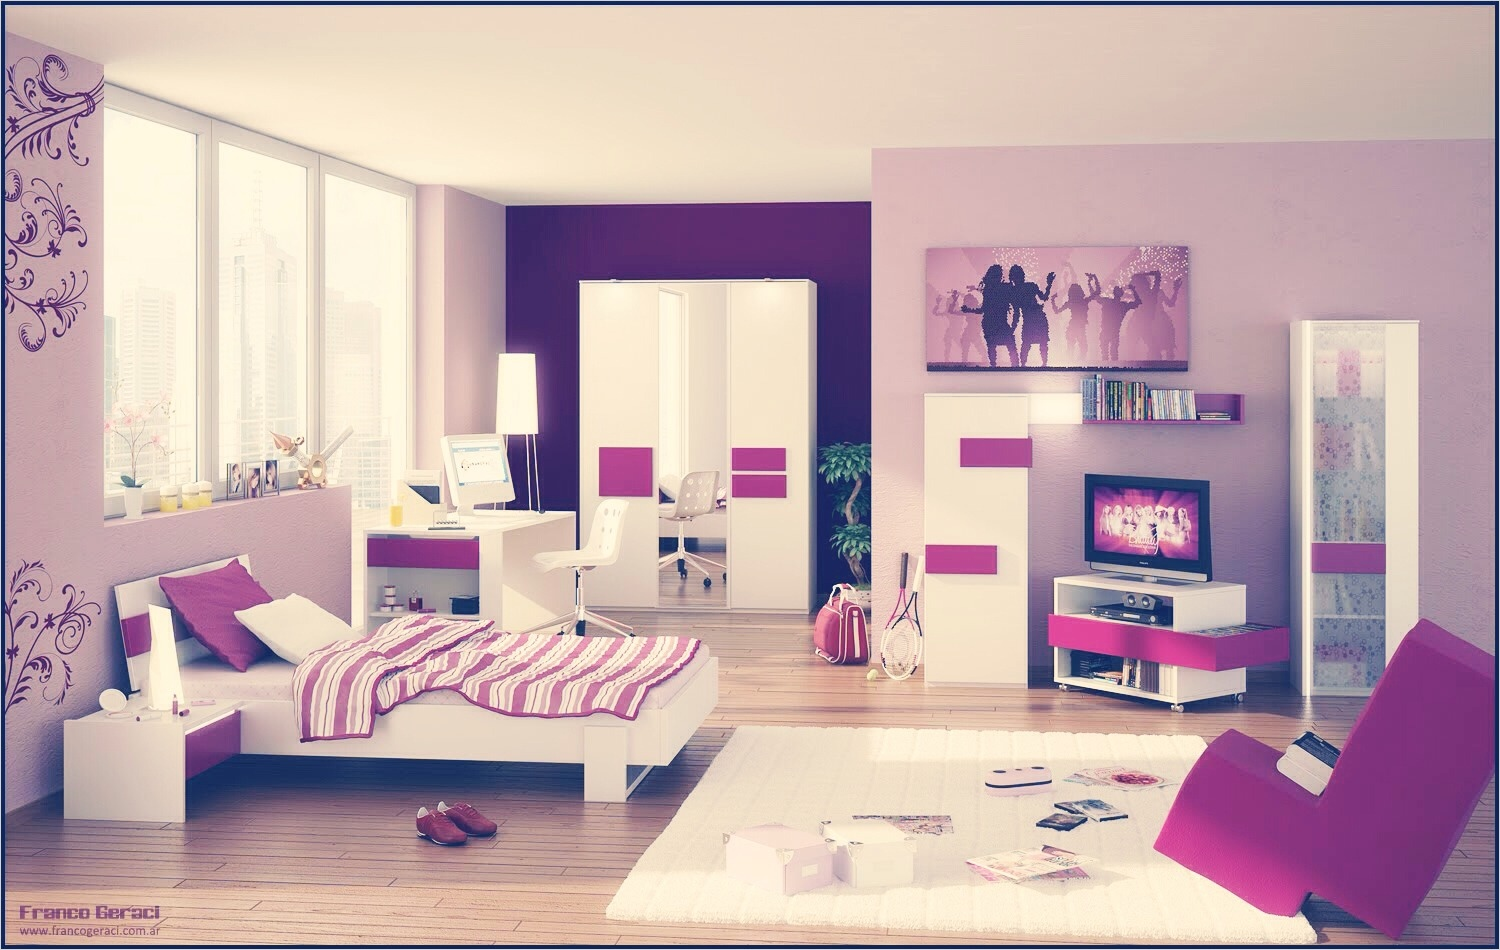 41 Amazing Dream Bedrooms for Teenage Girls 41 Dream Room for Girls Dream Romantic Bedrooms Small Dream Bedrooms for Teenage Girls Room 4